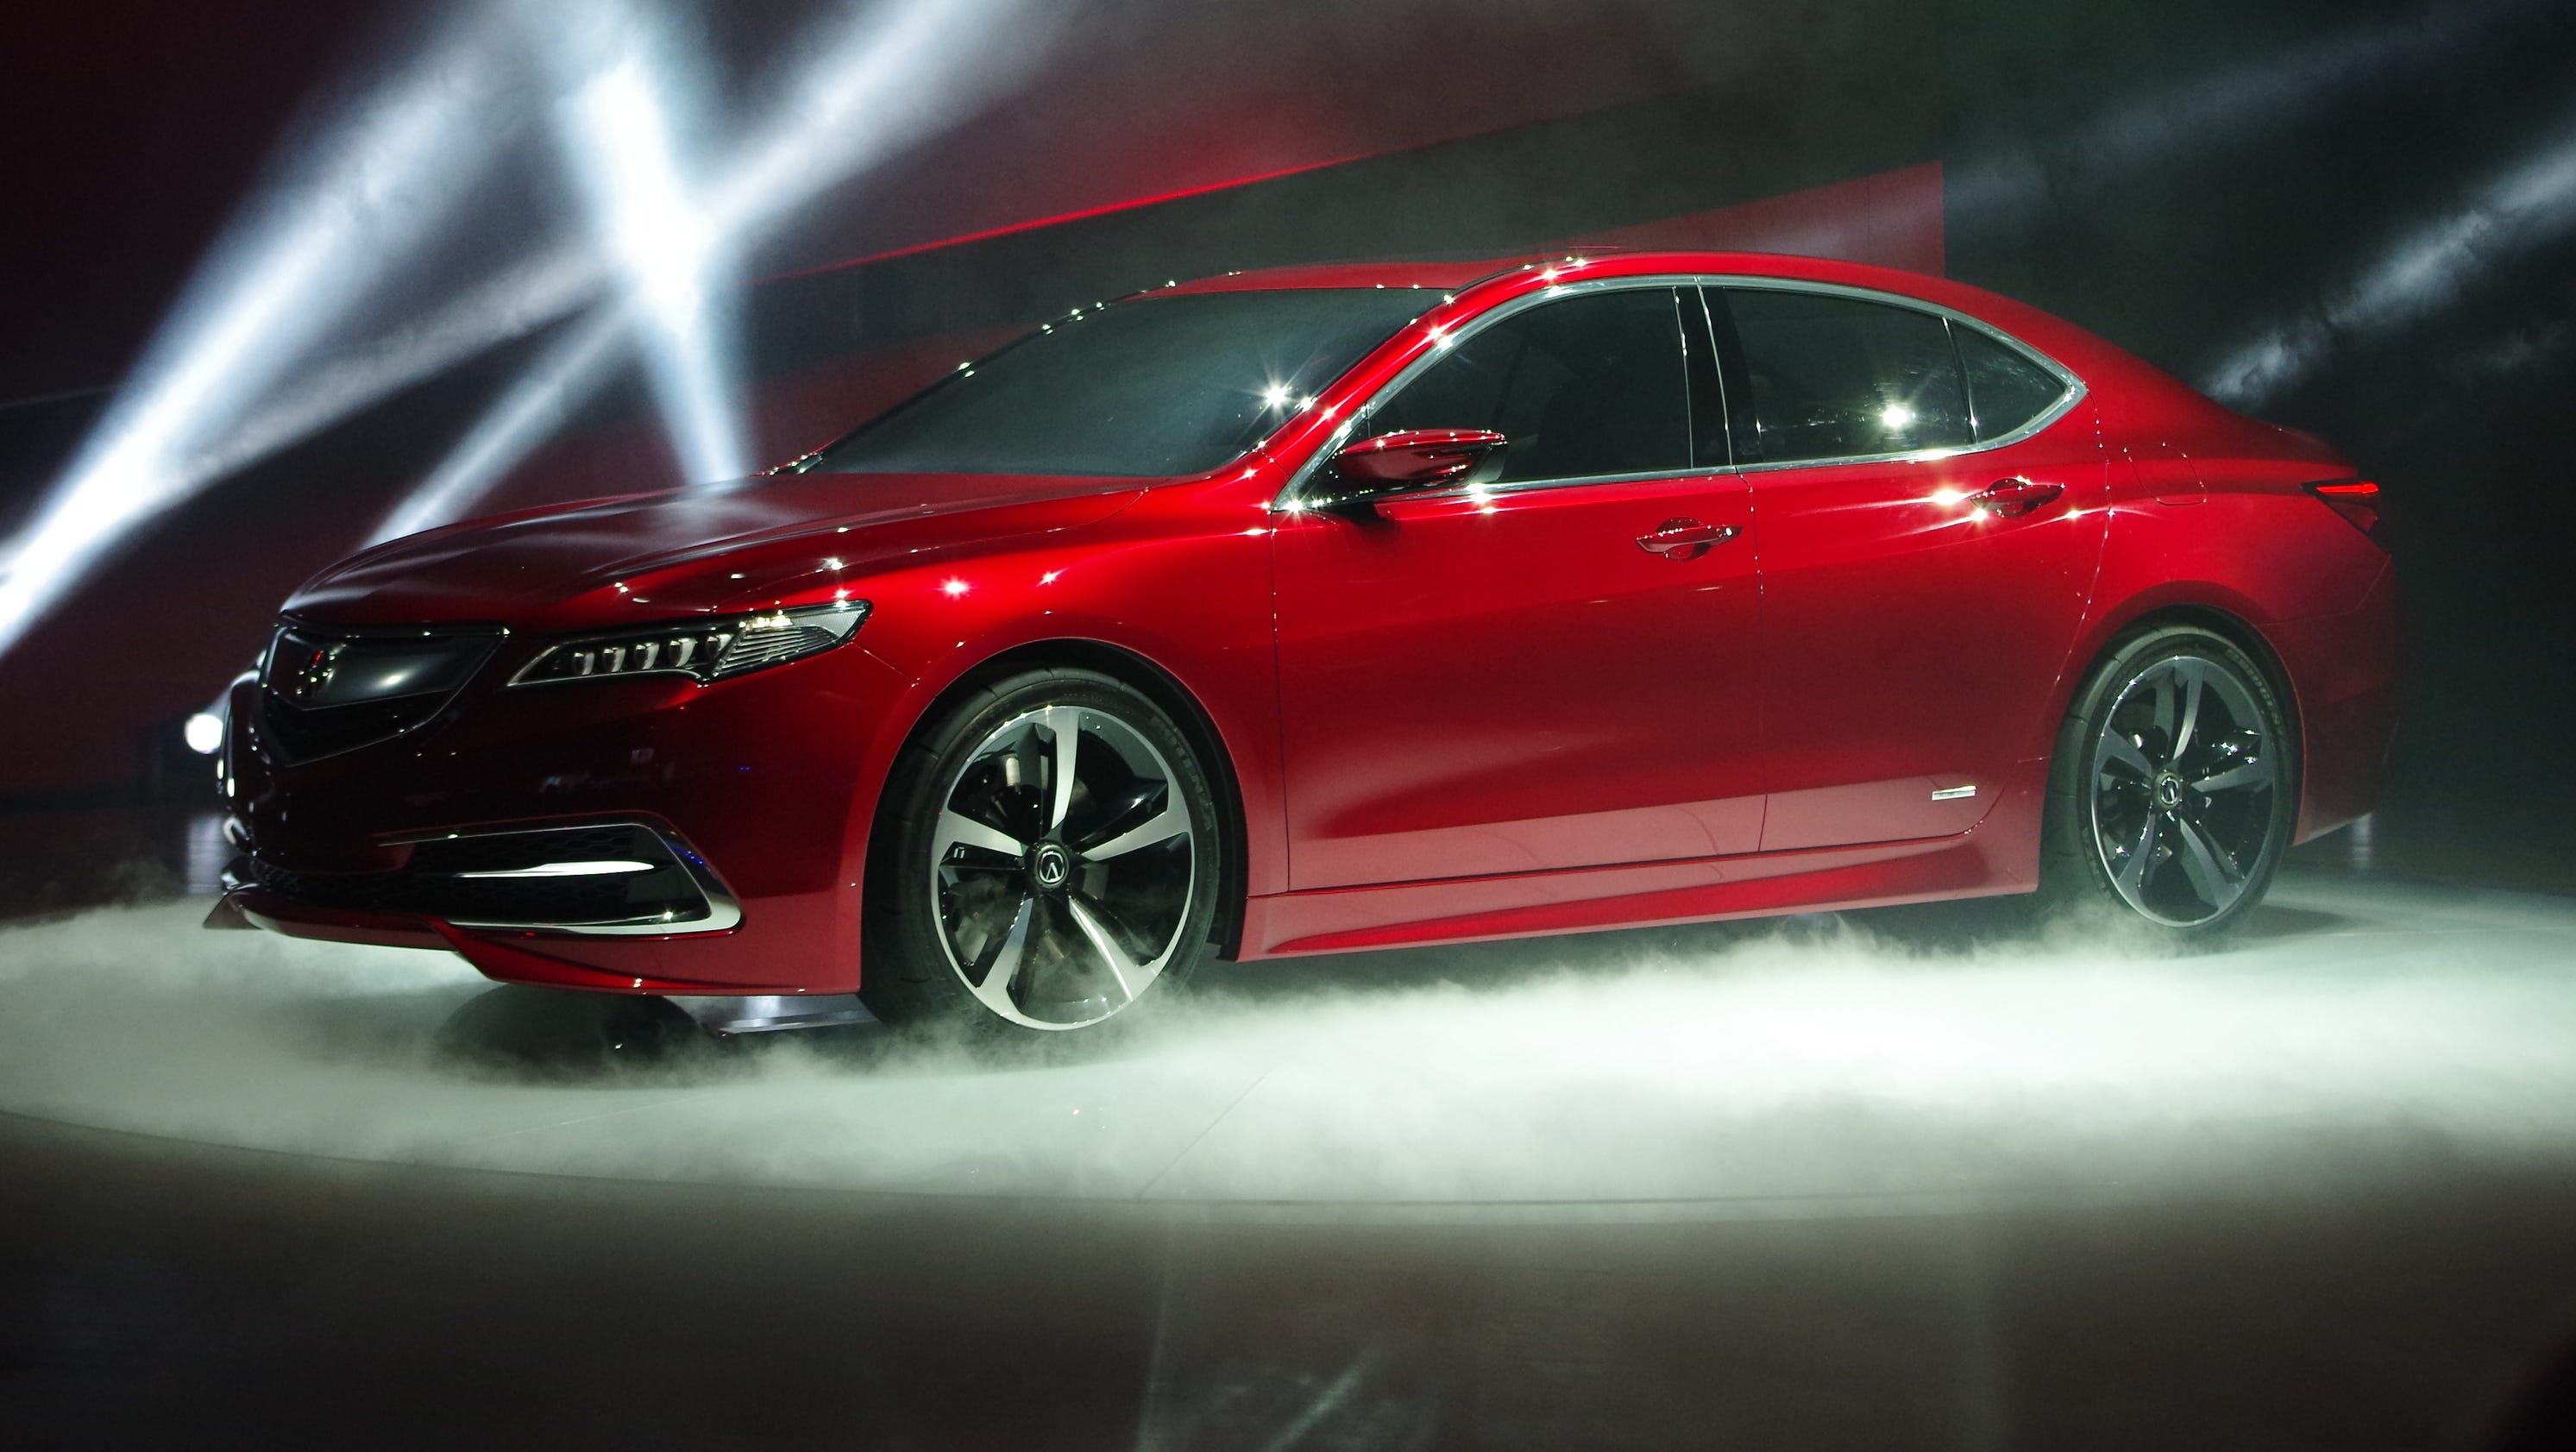 tlx speed acura top cars